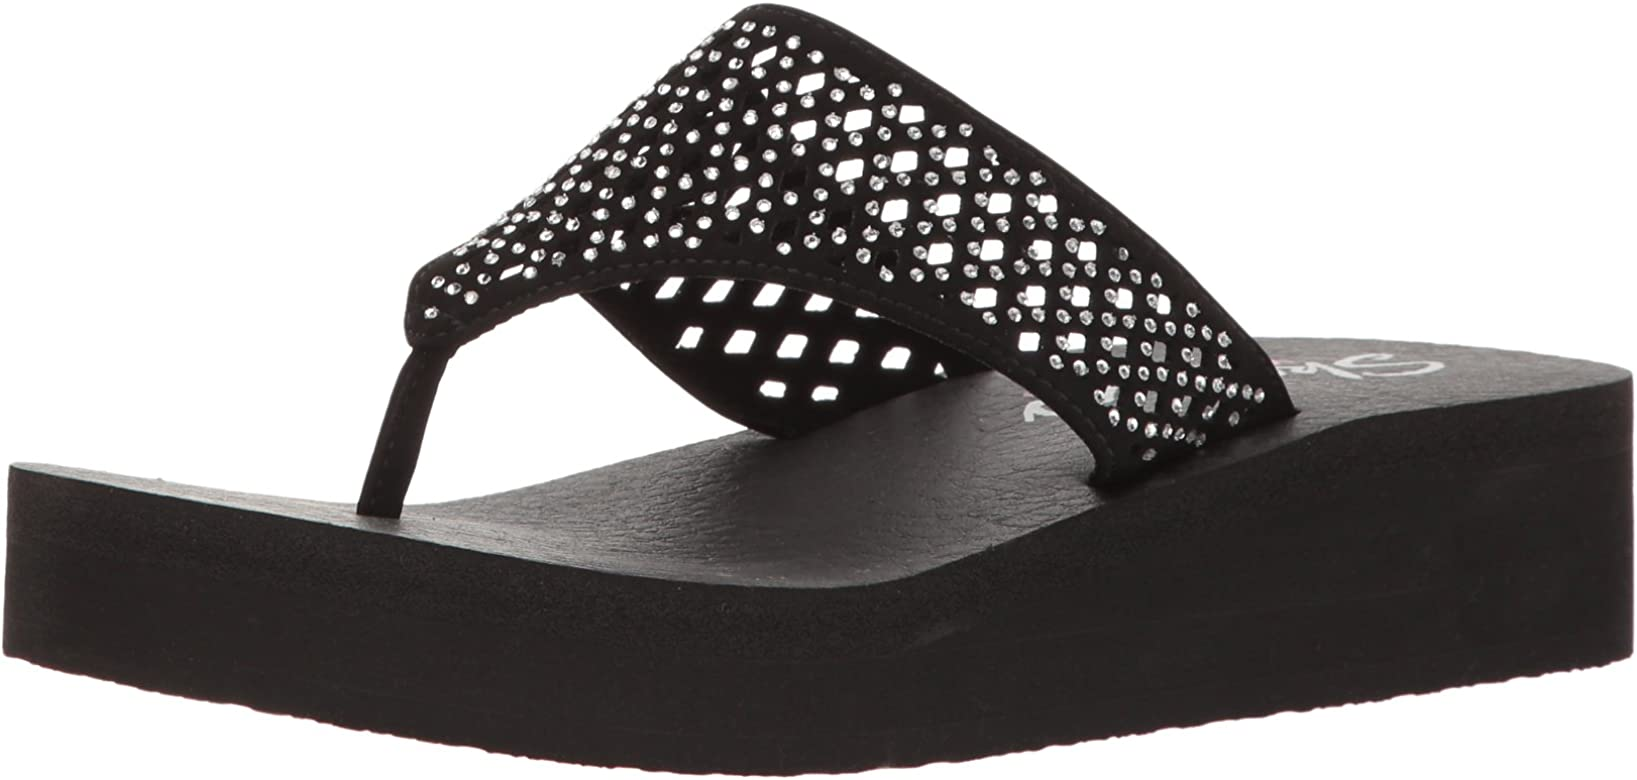 fdd789dbee Amazon.com | Skechers Cali Women's Vinyasa Flow Wedge Sandal, Black ...